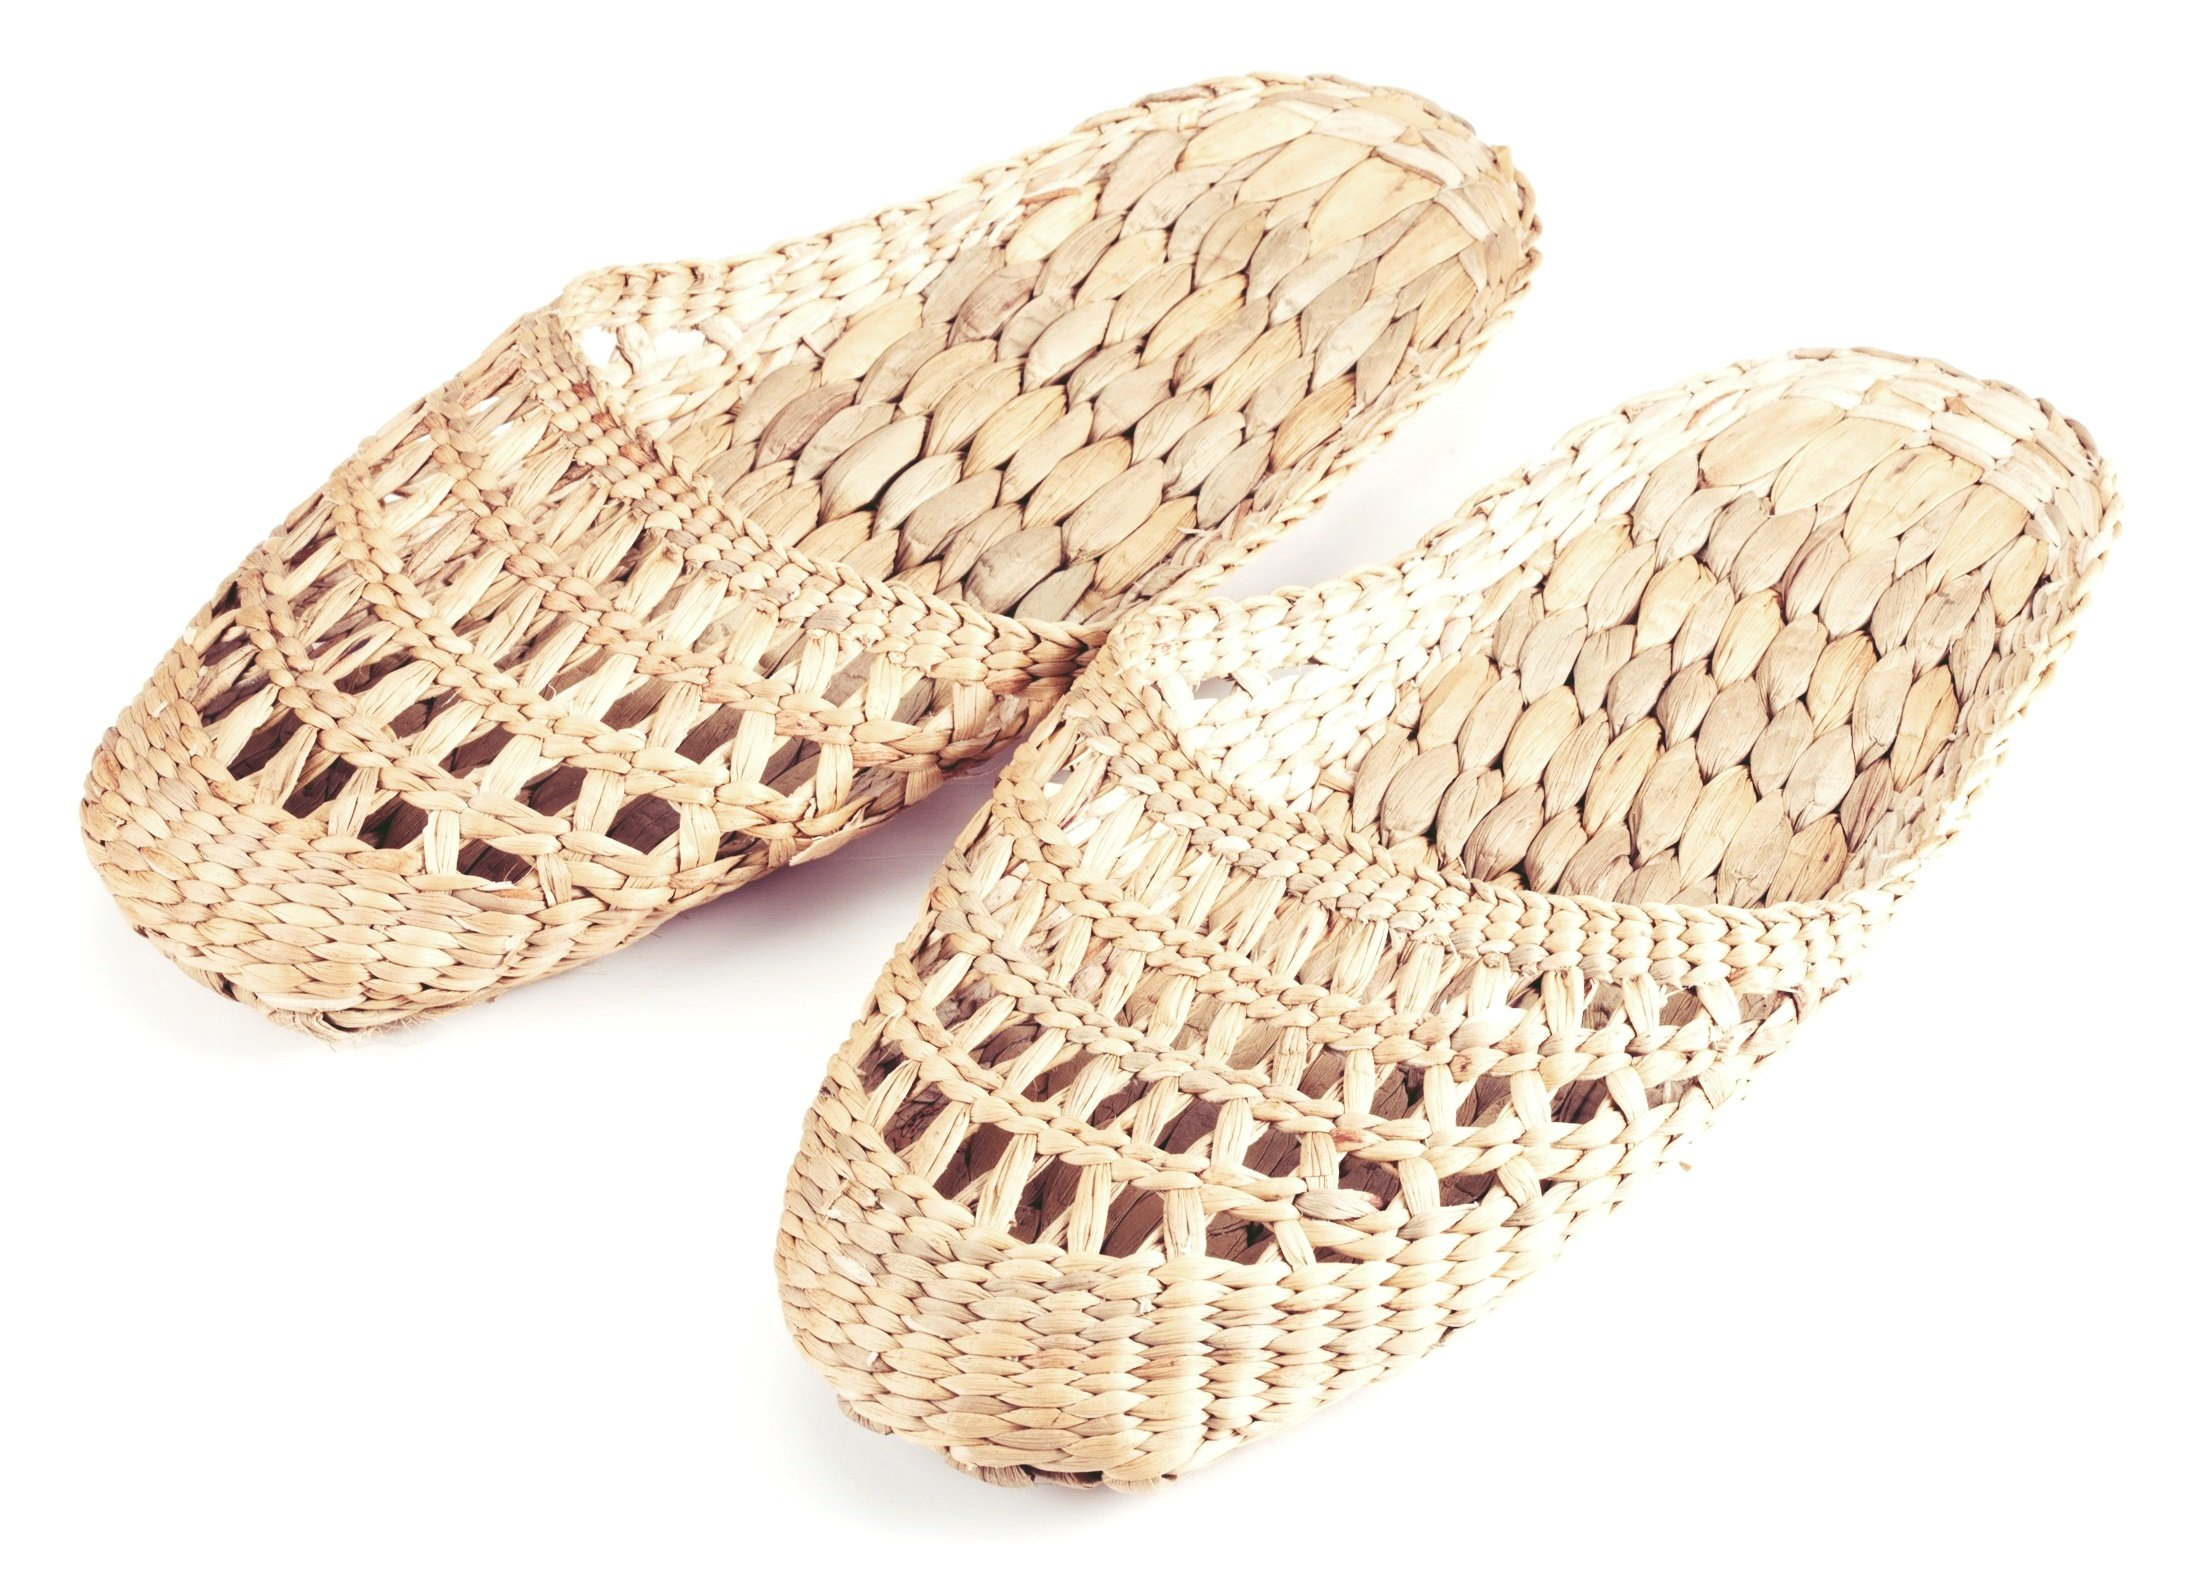 Gaia Guy 100% Natural Handmade Sandals/Slippers for Men and Ladies - Hand Woven Water Hyacinth - Crochet Style Small (L9.5'' x 3.5'' Approx.)